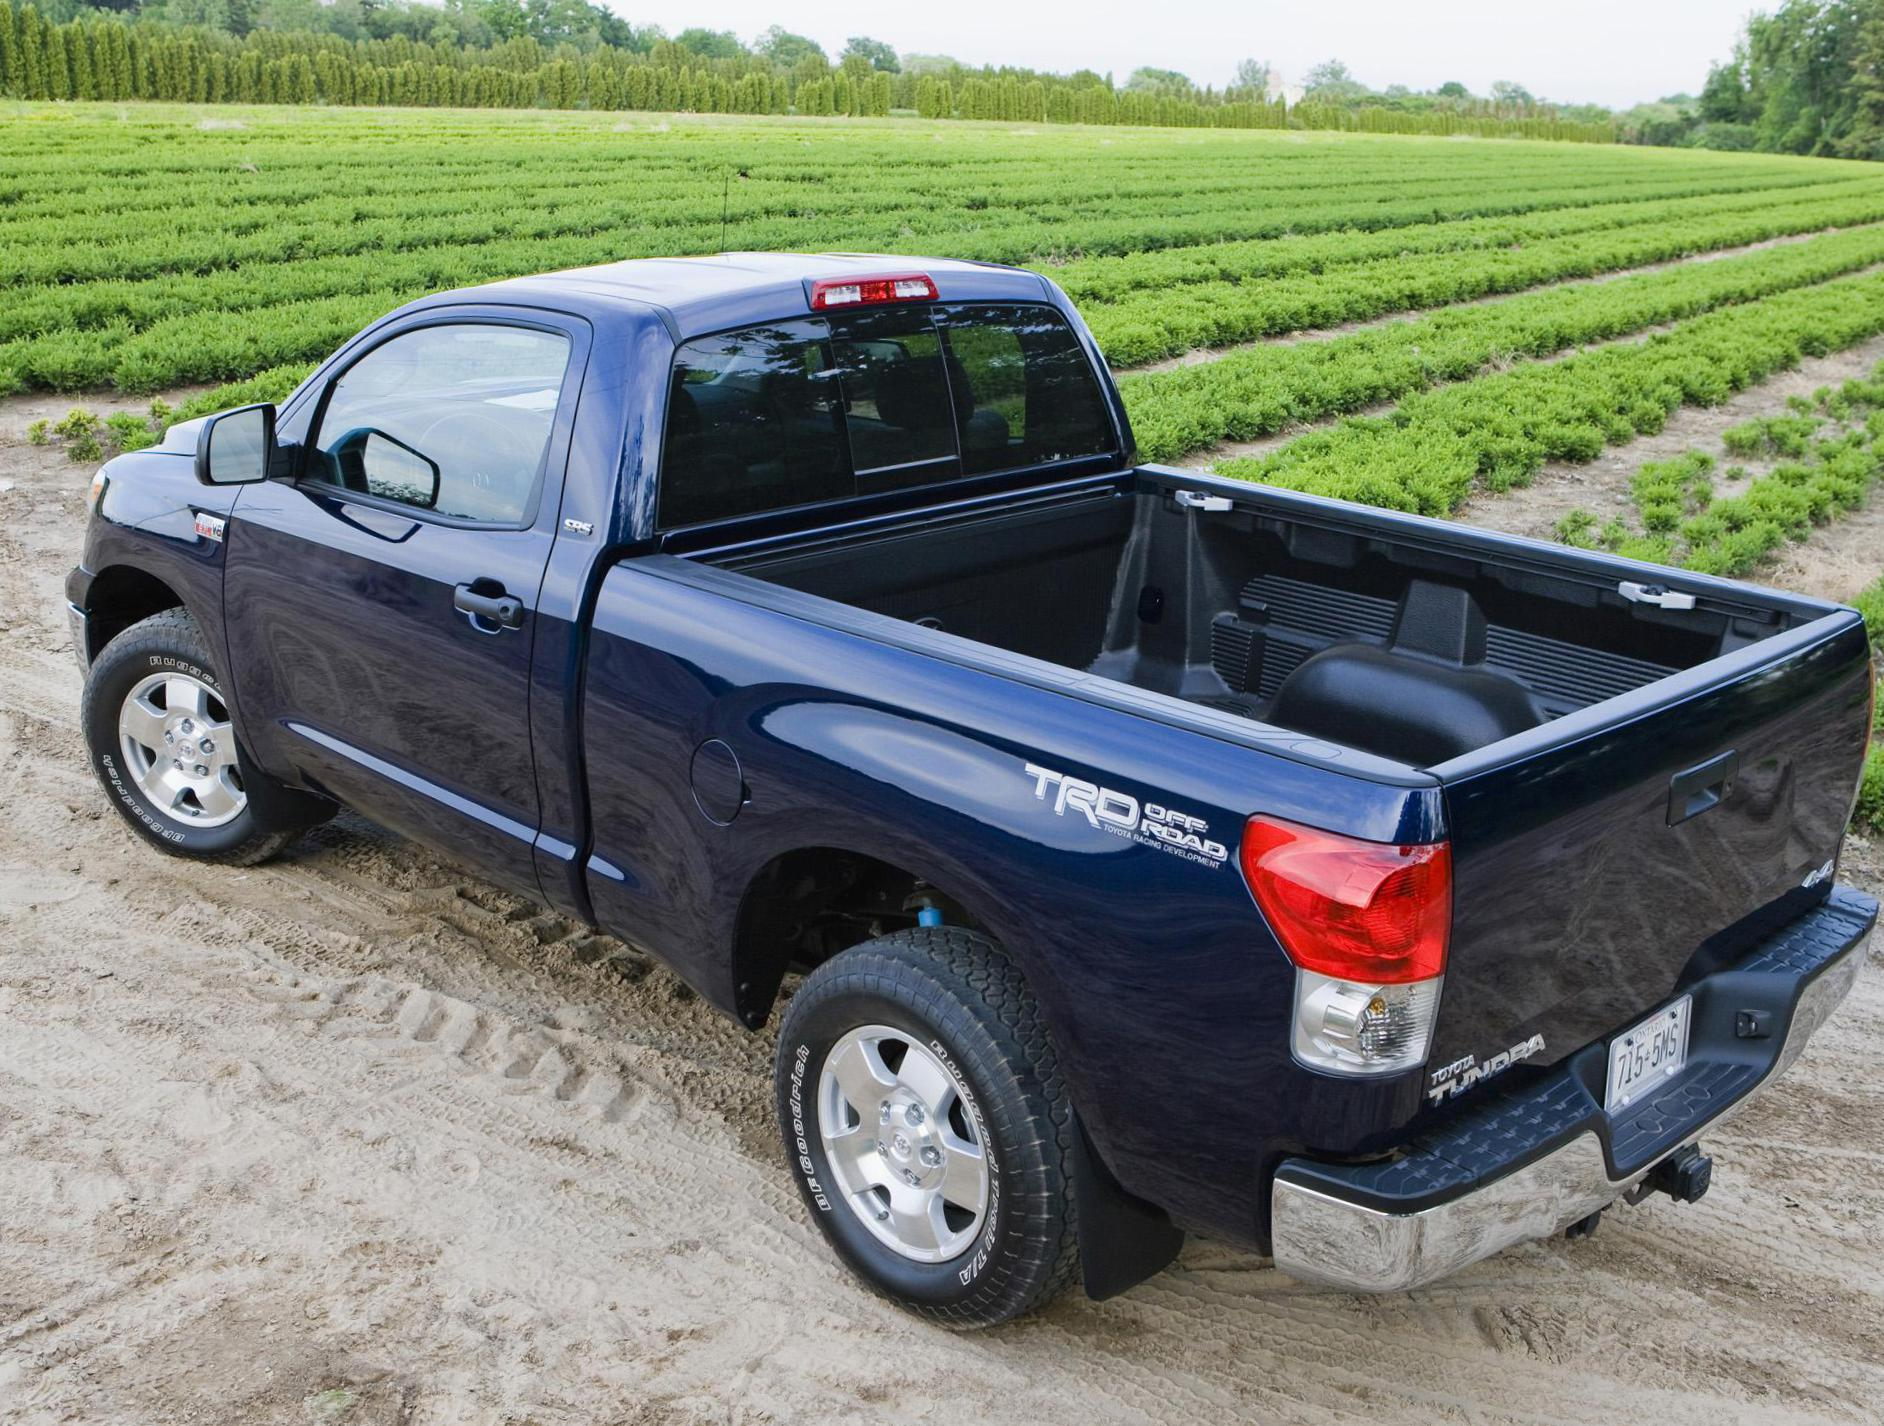 Toyota Tundra Regular Cab Specifications 2007